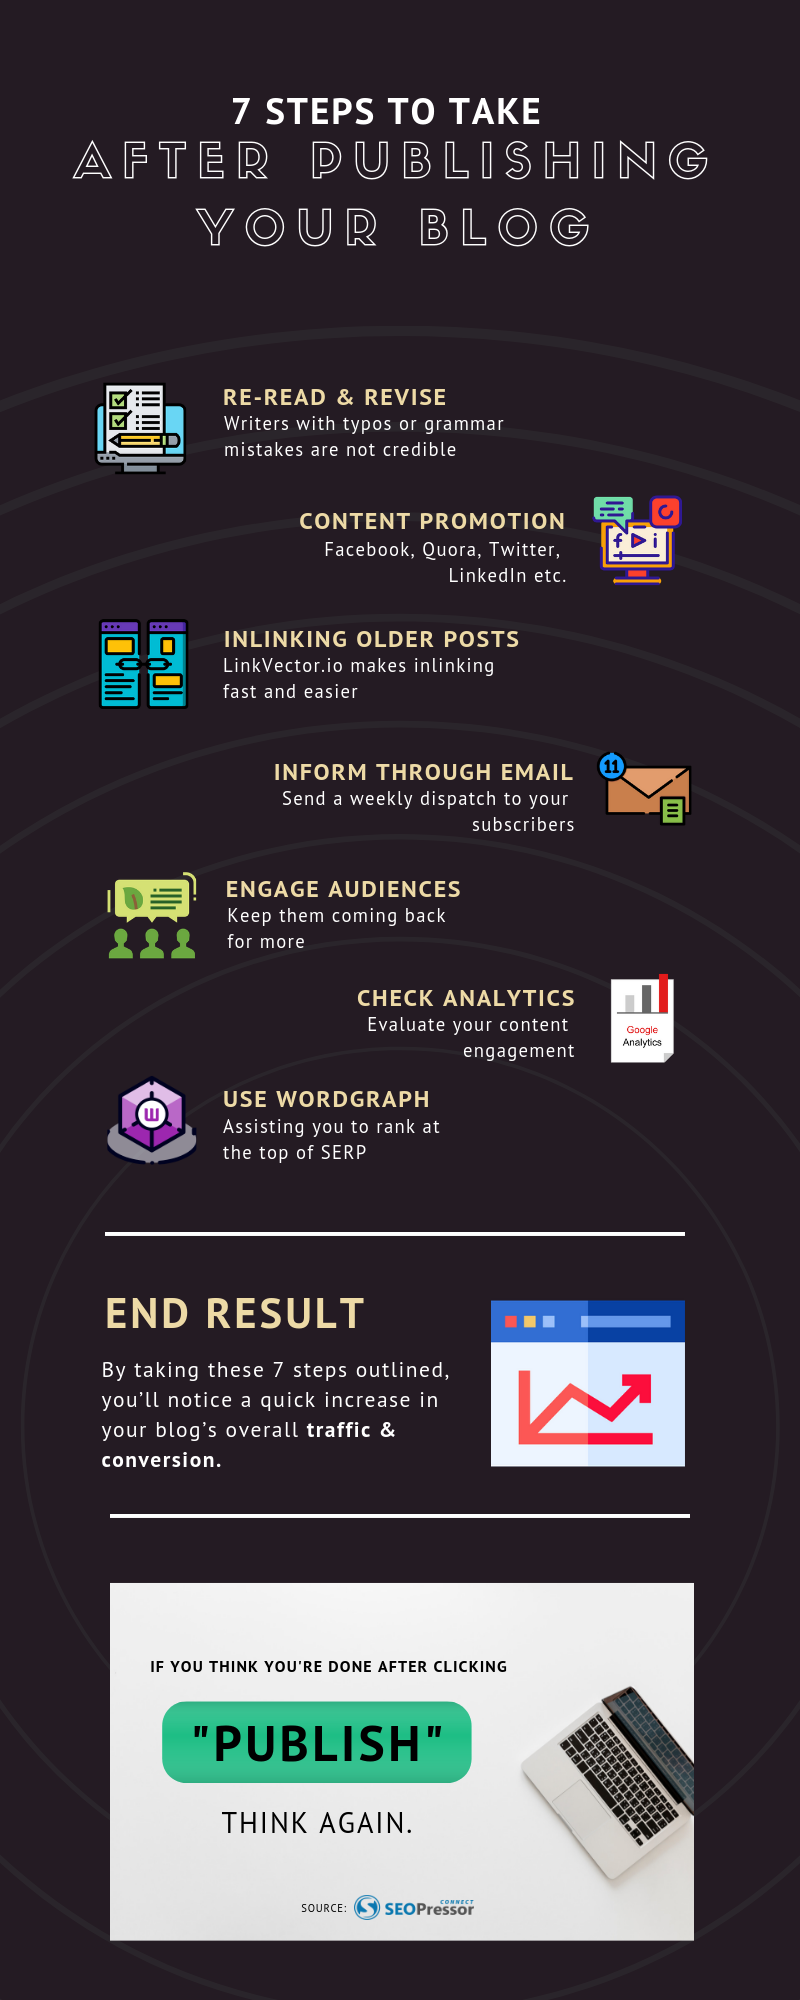 7 Steps To Take After Publishing Your Blog infographic